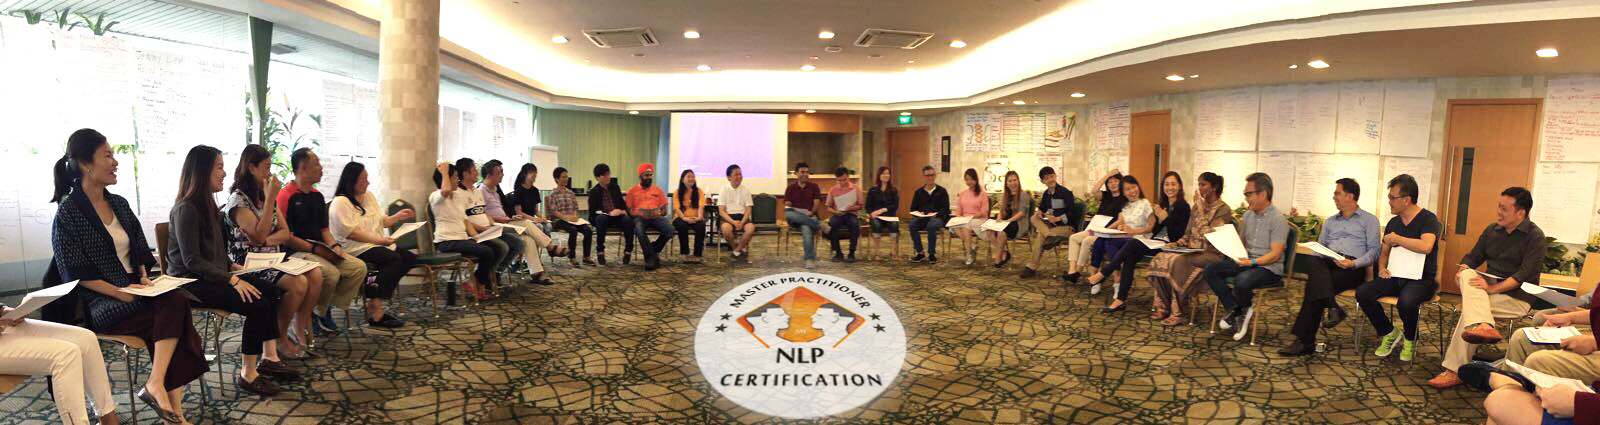 The NLP Master Practitioner Fellowship